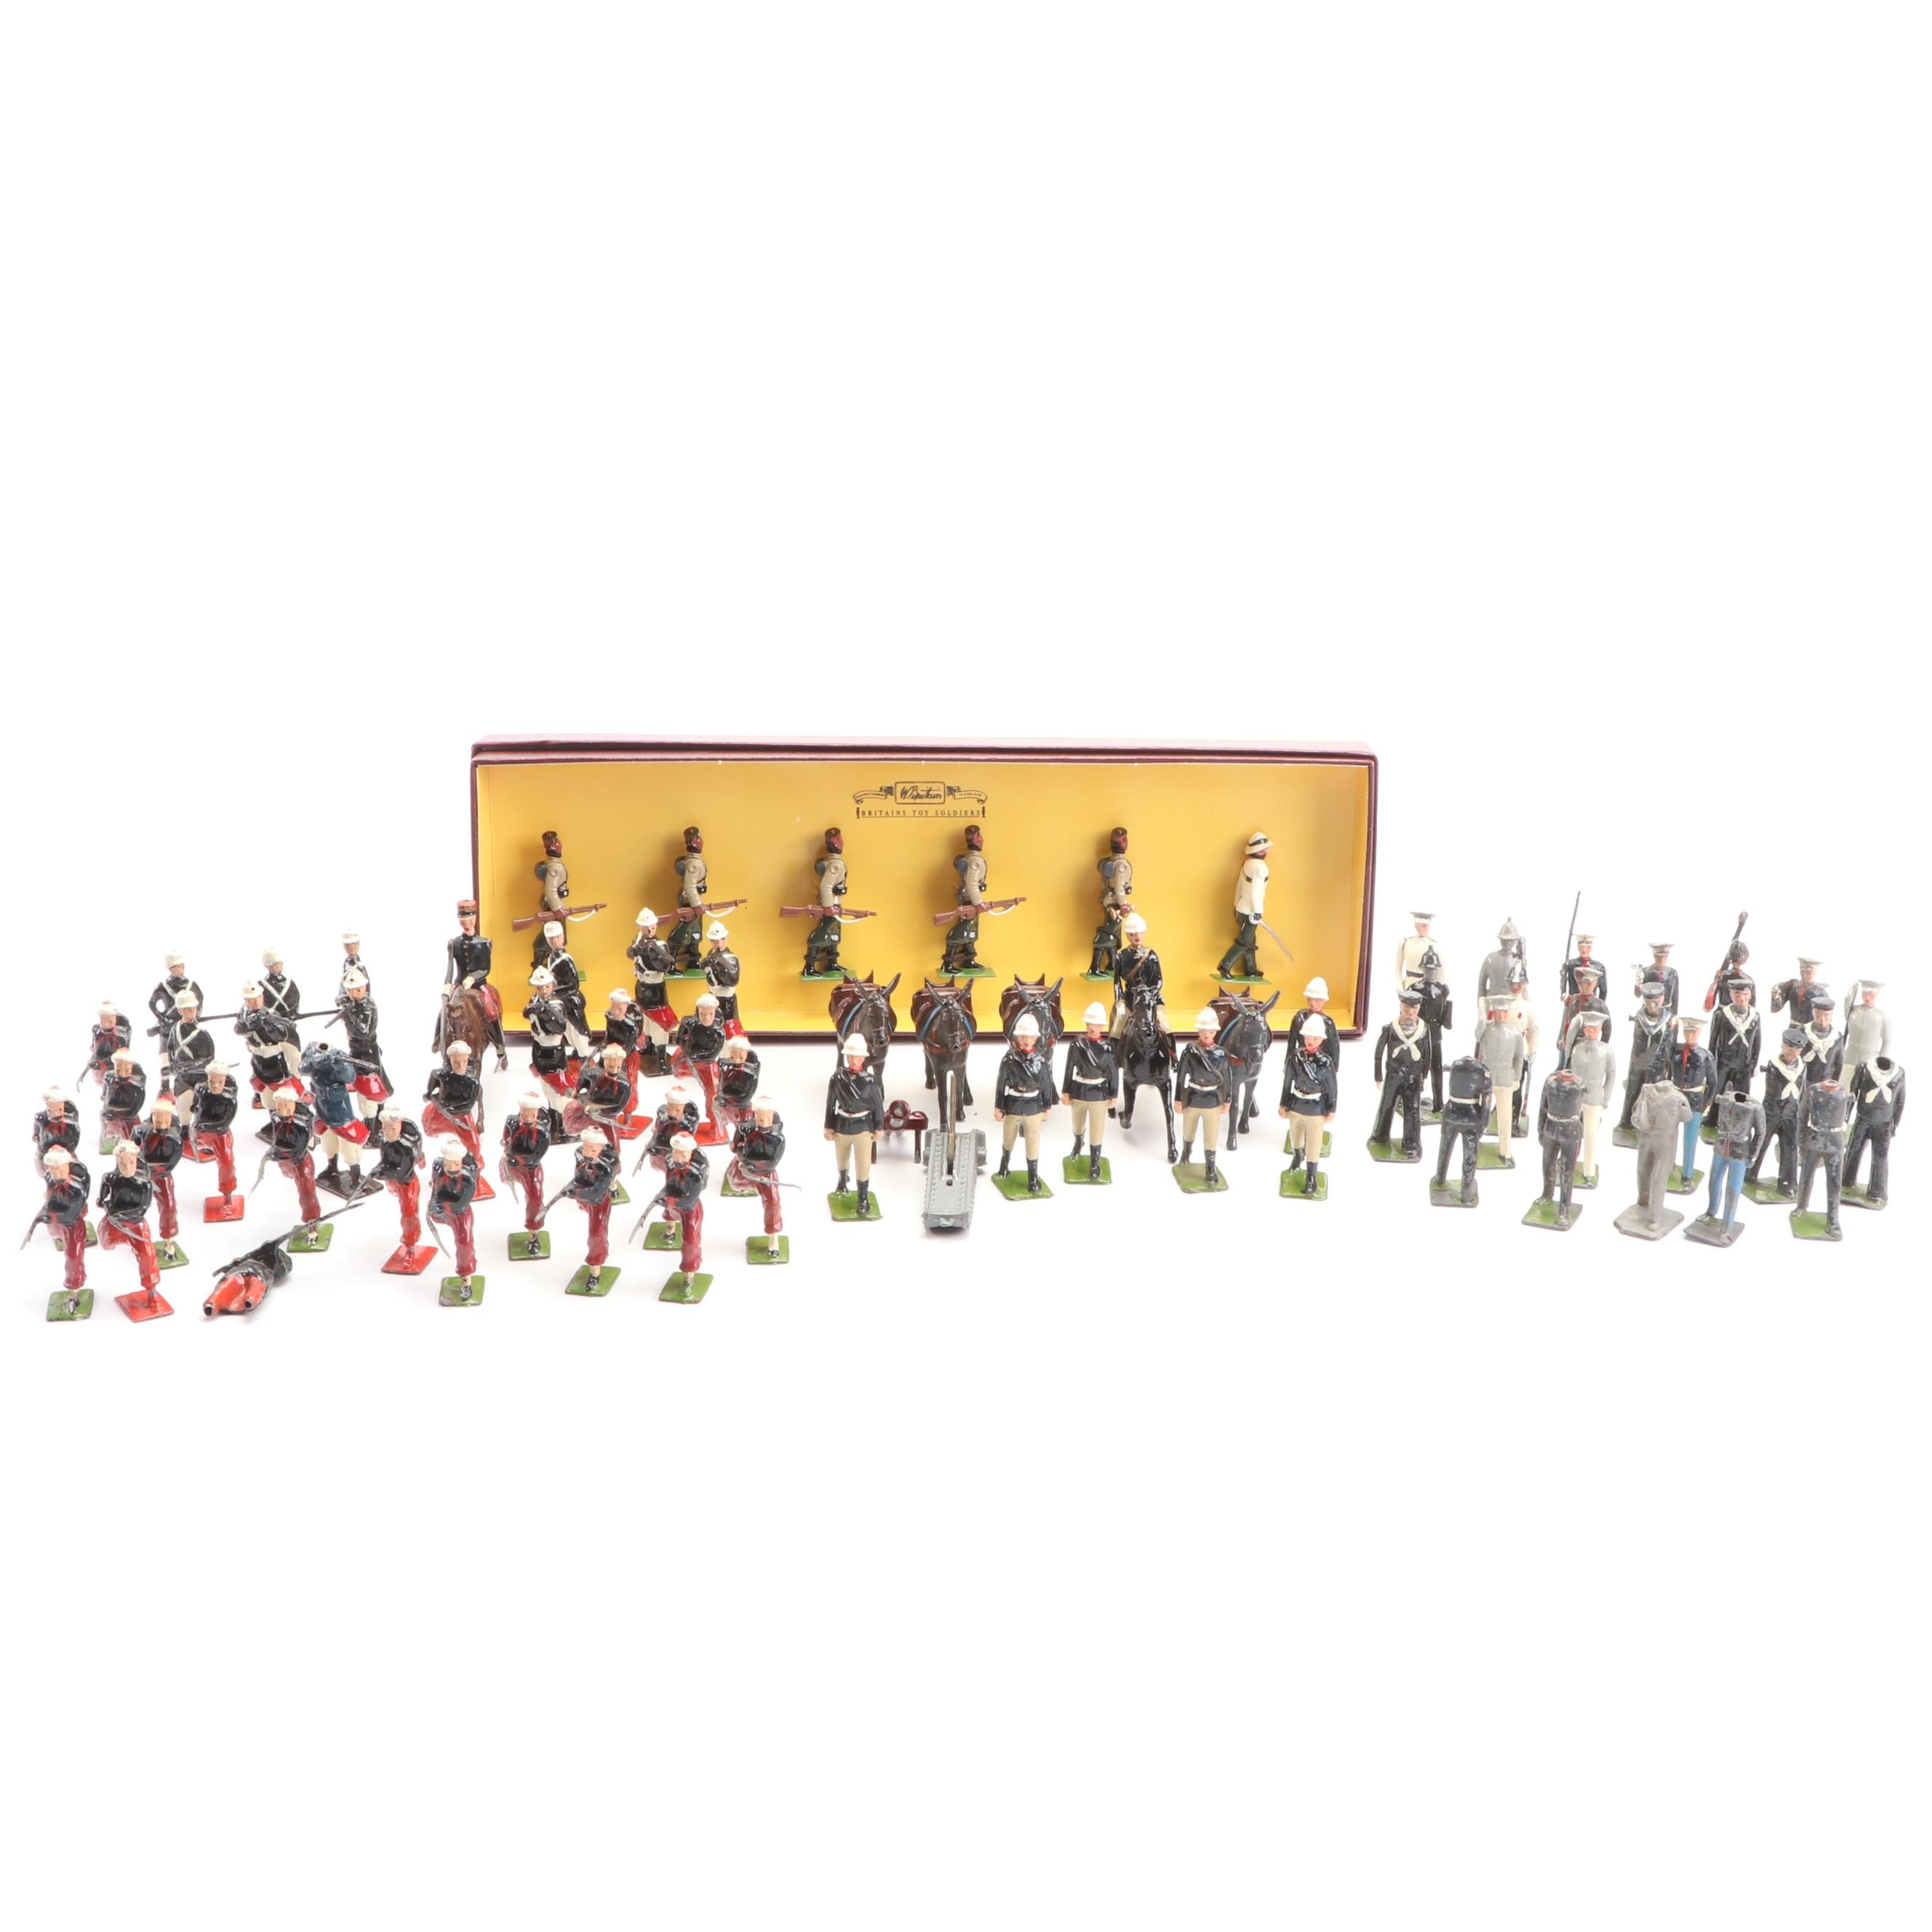 W. Britain and Johillco Die-Cast Soldiers